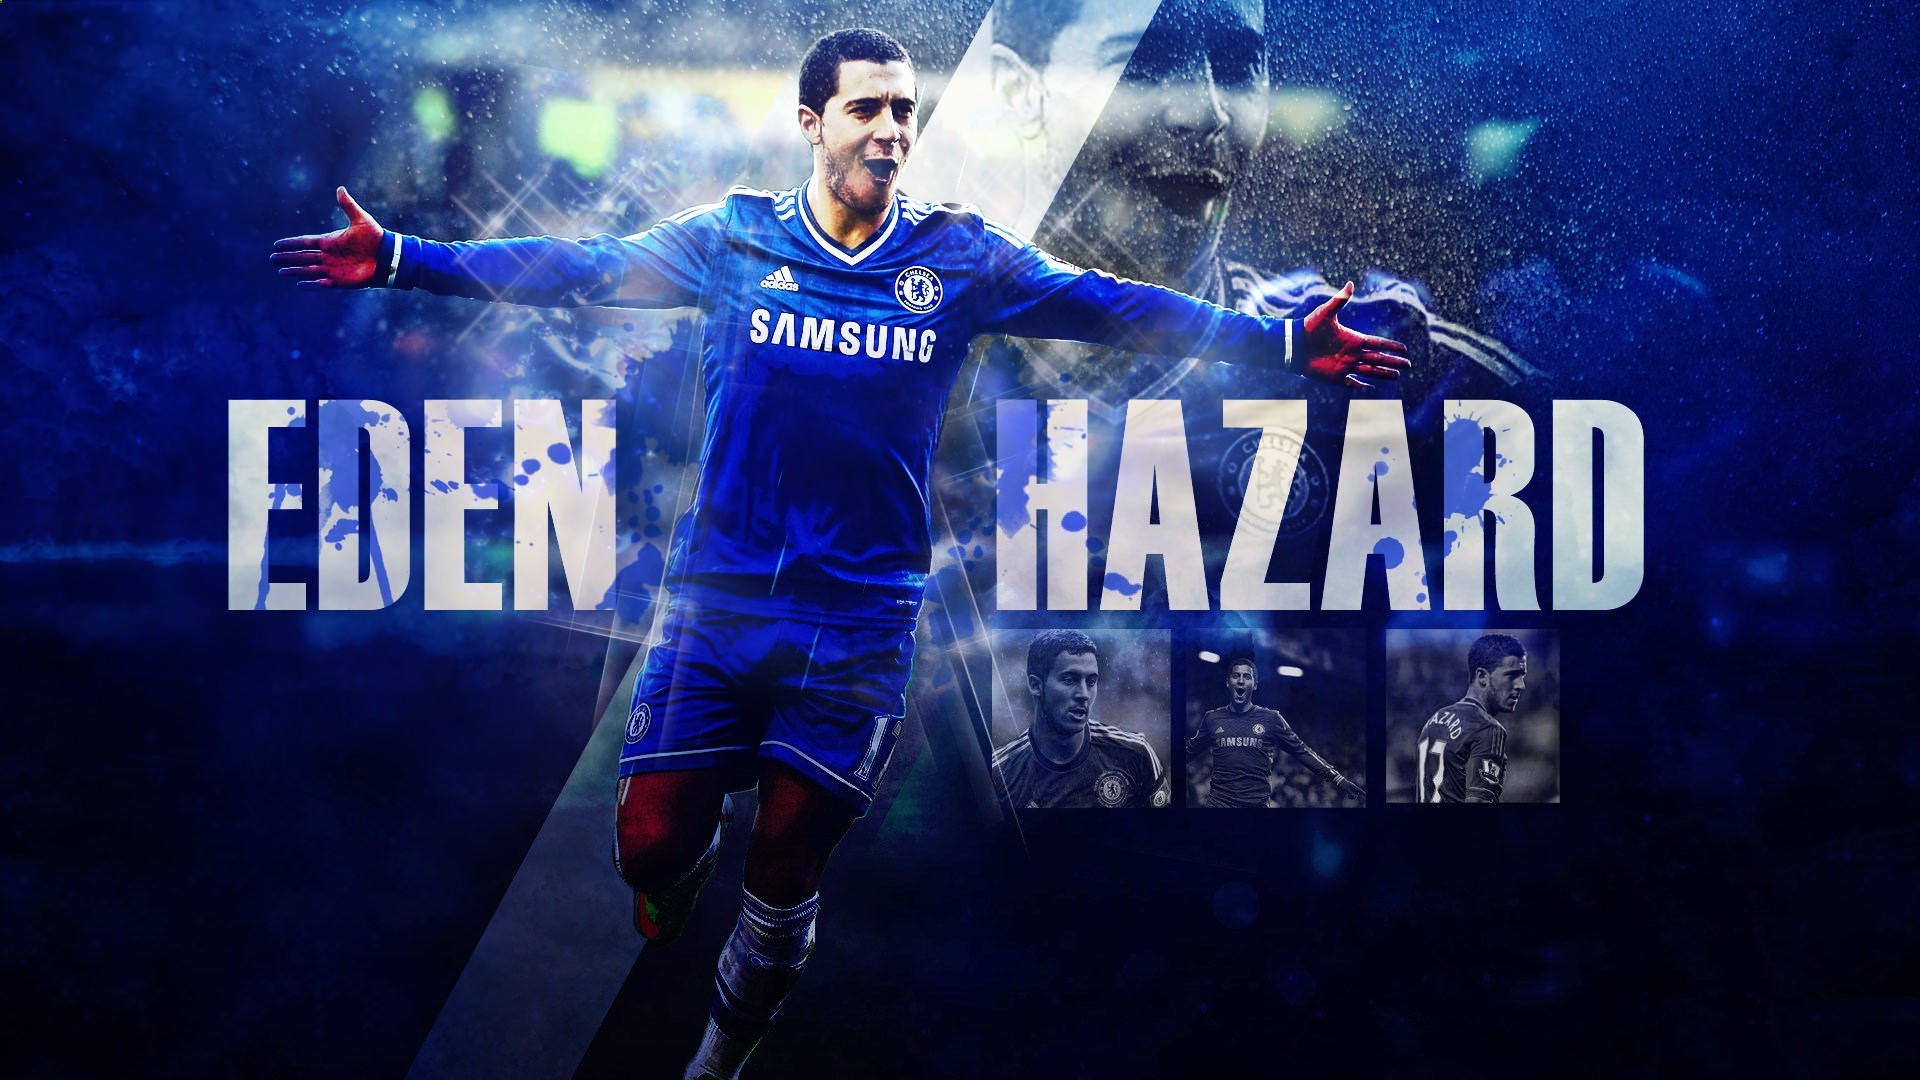 Eden-Michael-Hazard-is-a-Belgian-professional-footballer-who-plays-for-Chelsea-and-the-Belgium-natio-wallpaper-wpc5804512